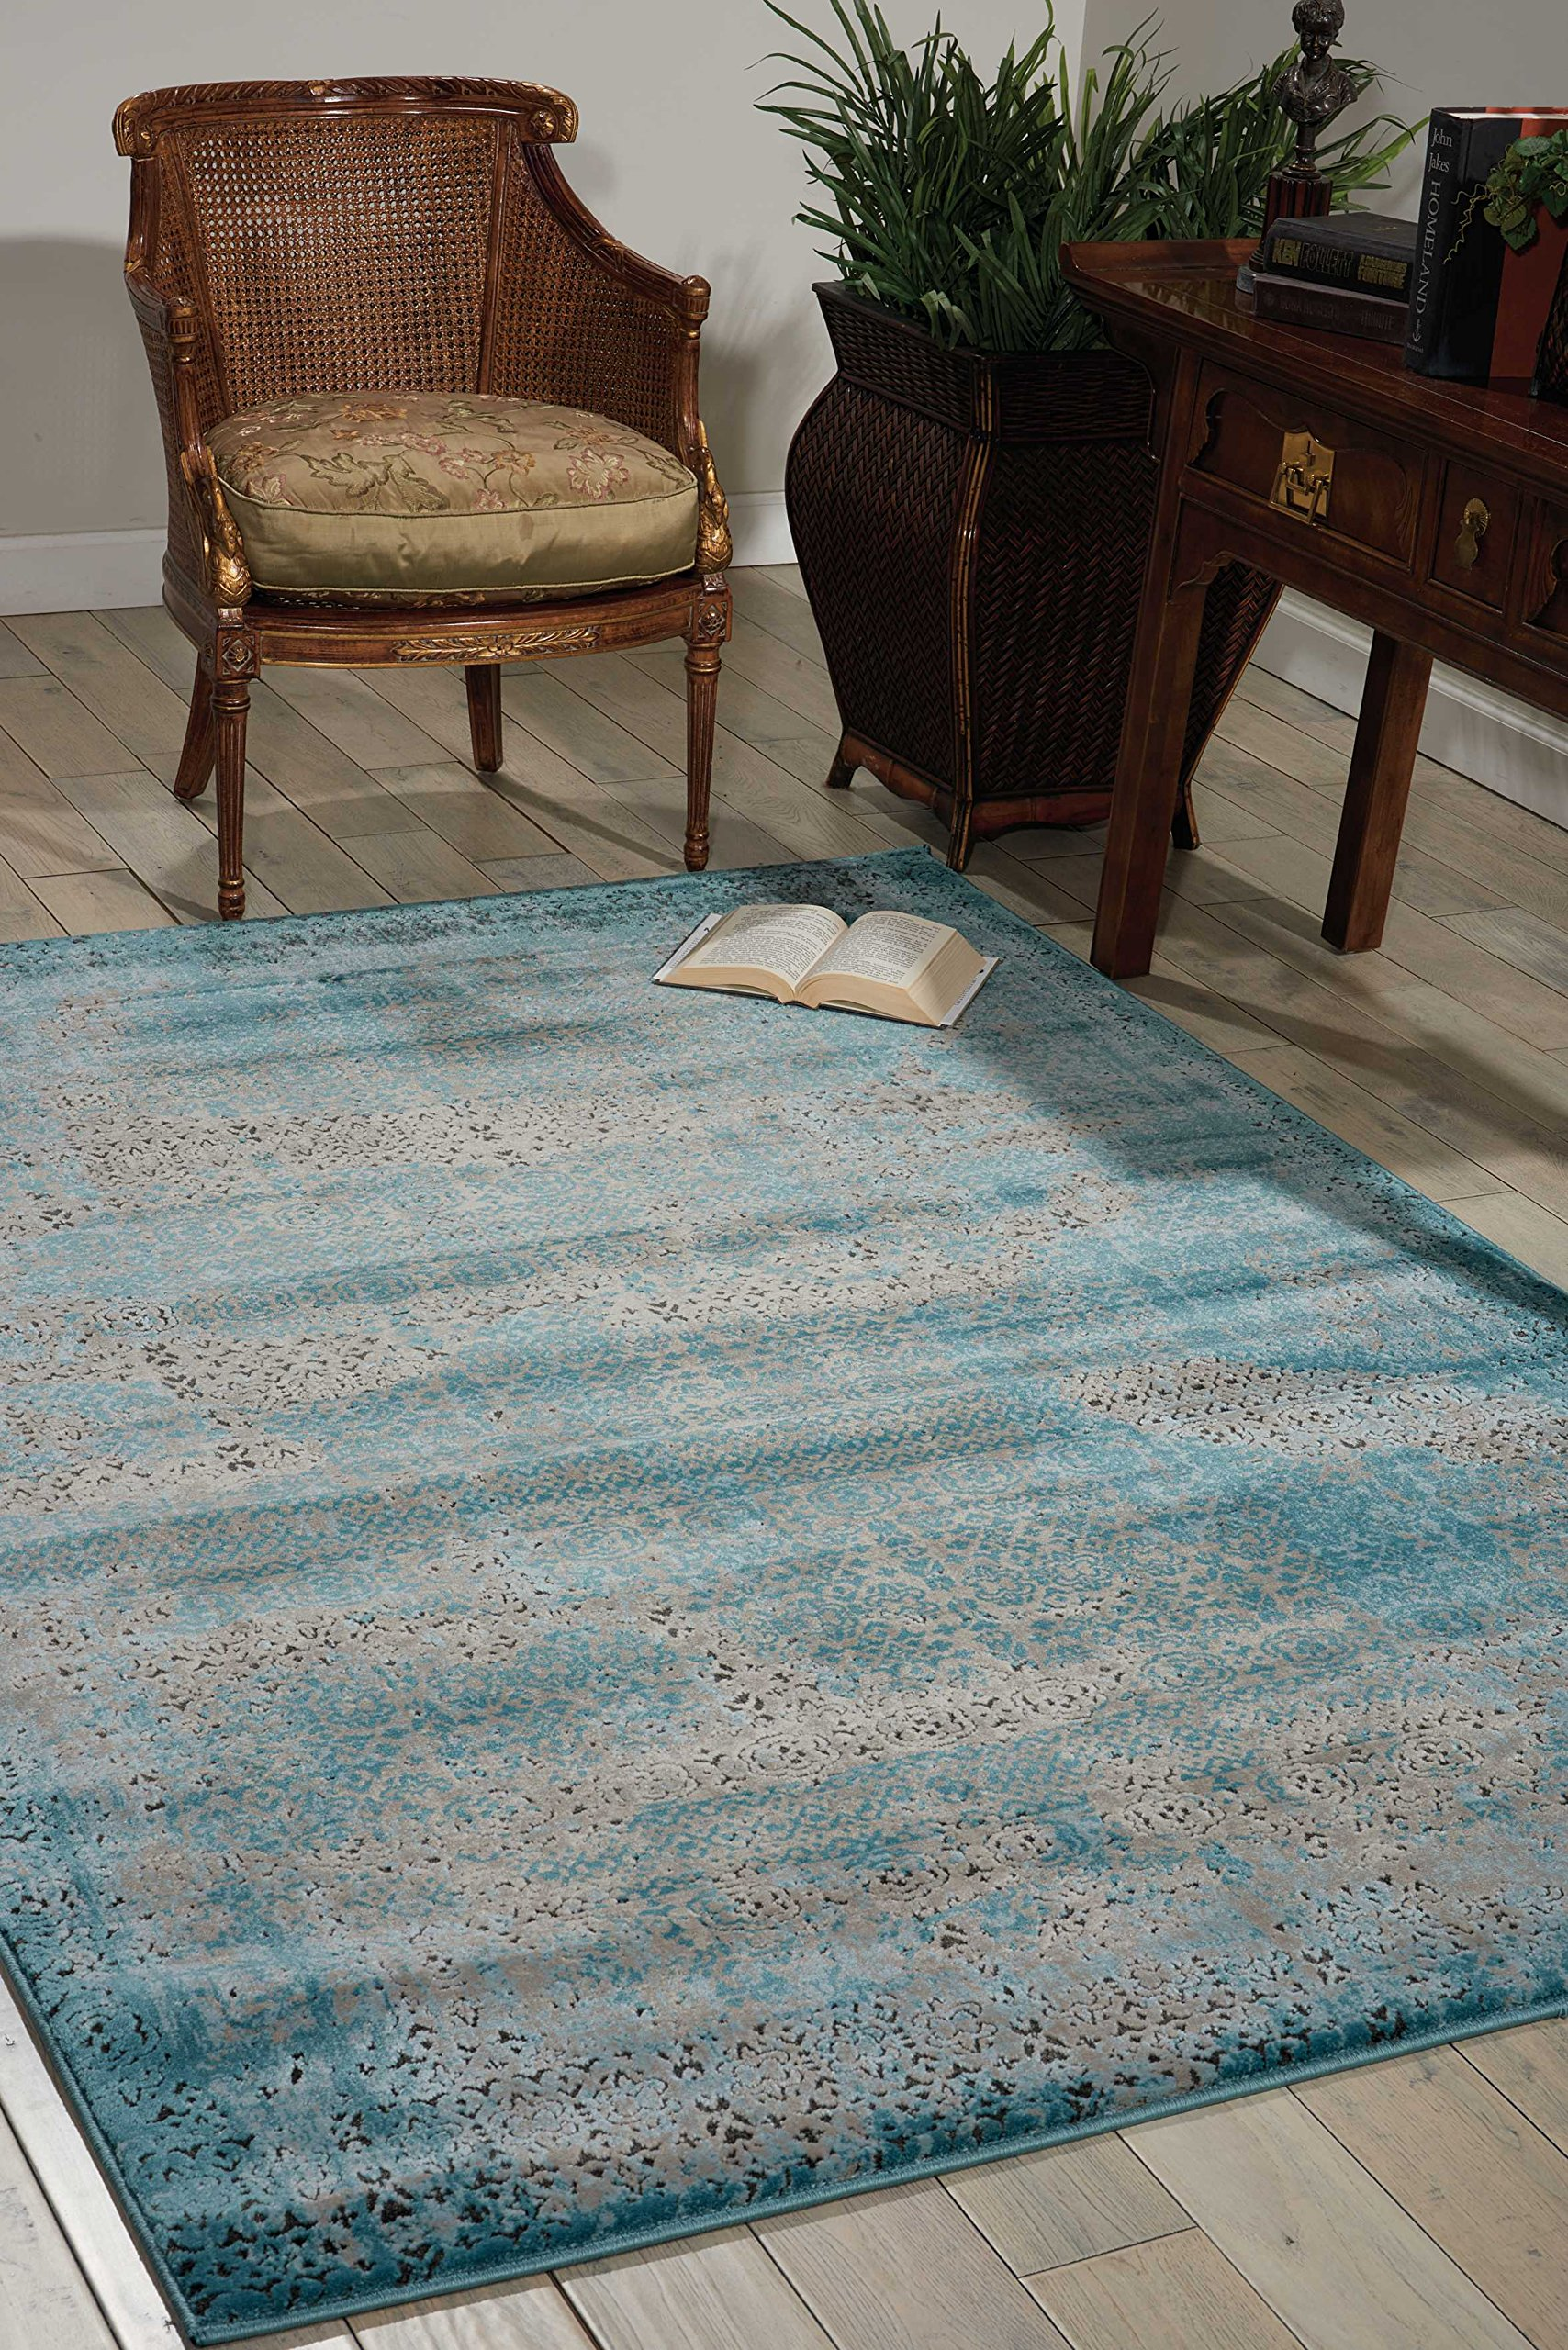 Nourison Karma (KRM01) Blu Rectangle Area Rug, 9-Feet 3-Inches by 12-Feet 9-Inches (9'3'' x 12'9'') by Nourison